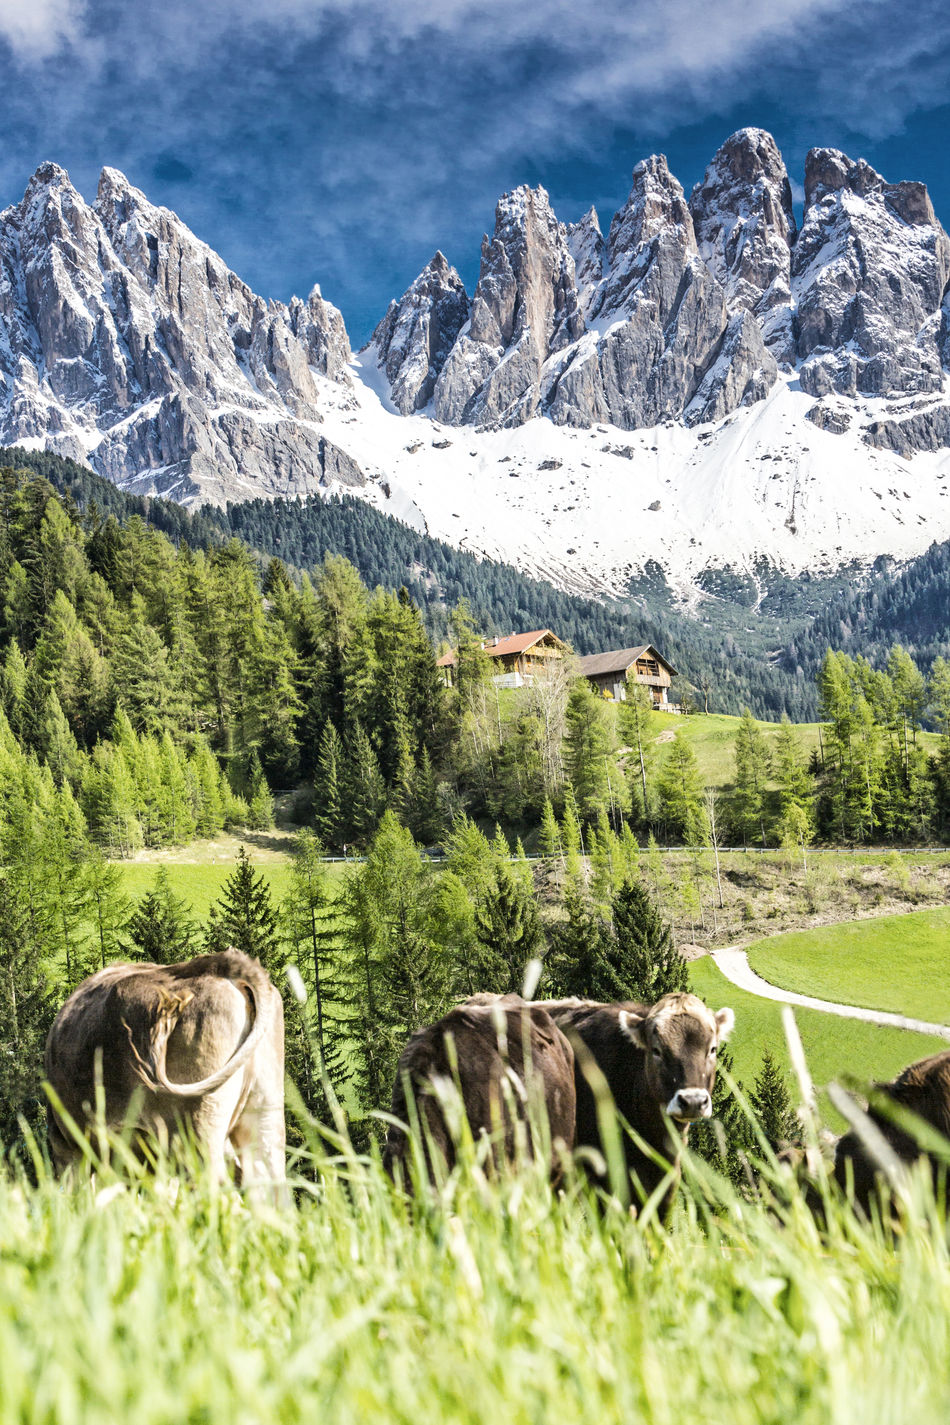 Spring at Villnöss valley with geisler group, Dolomites, South Tyrol Alm Alps Alto Adige Beauty In Nature Dolomites Funes Geisler Hiking Italy Meadow Mountain Range Odle Odles Pasture Puez-odle Rocks Seceda Snow Spring St. Magdalena Südtirol Vacations Val Di Funes Villnöss Villnöss